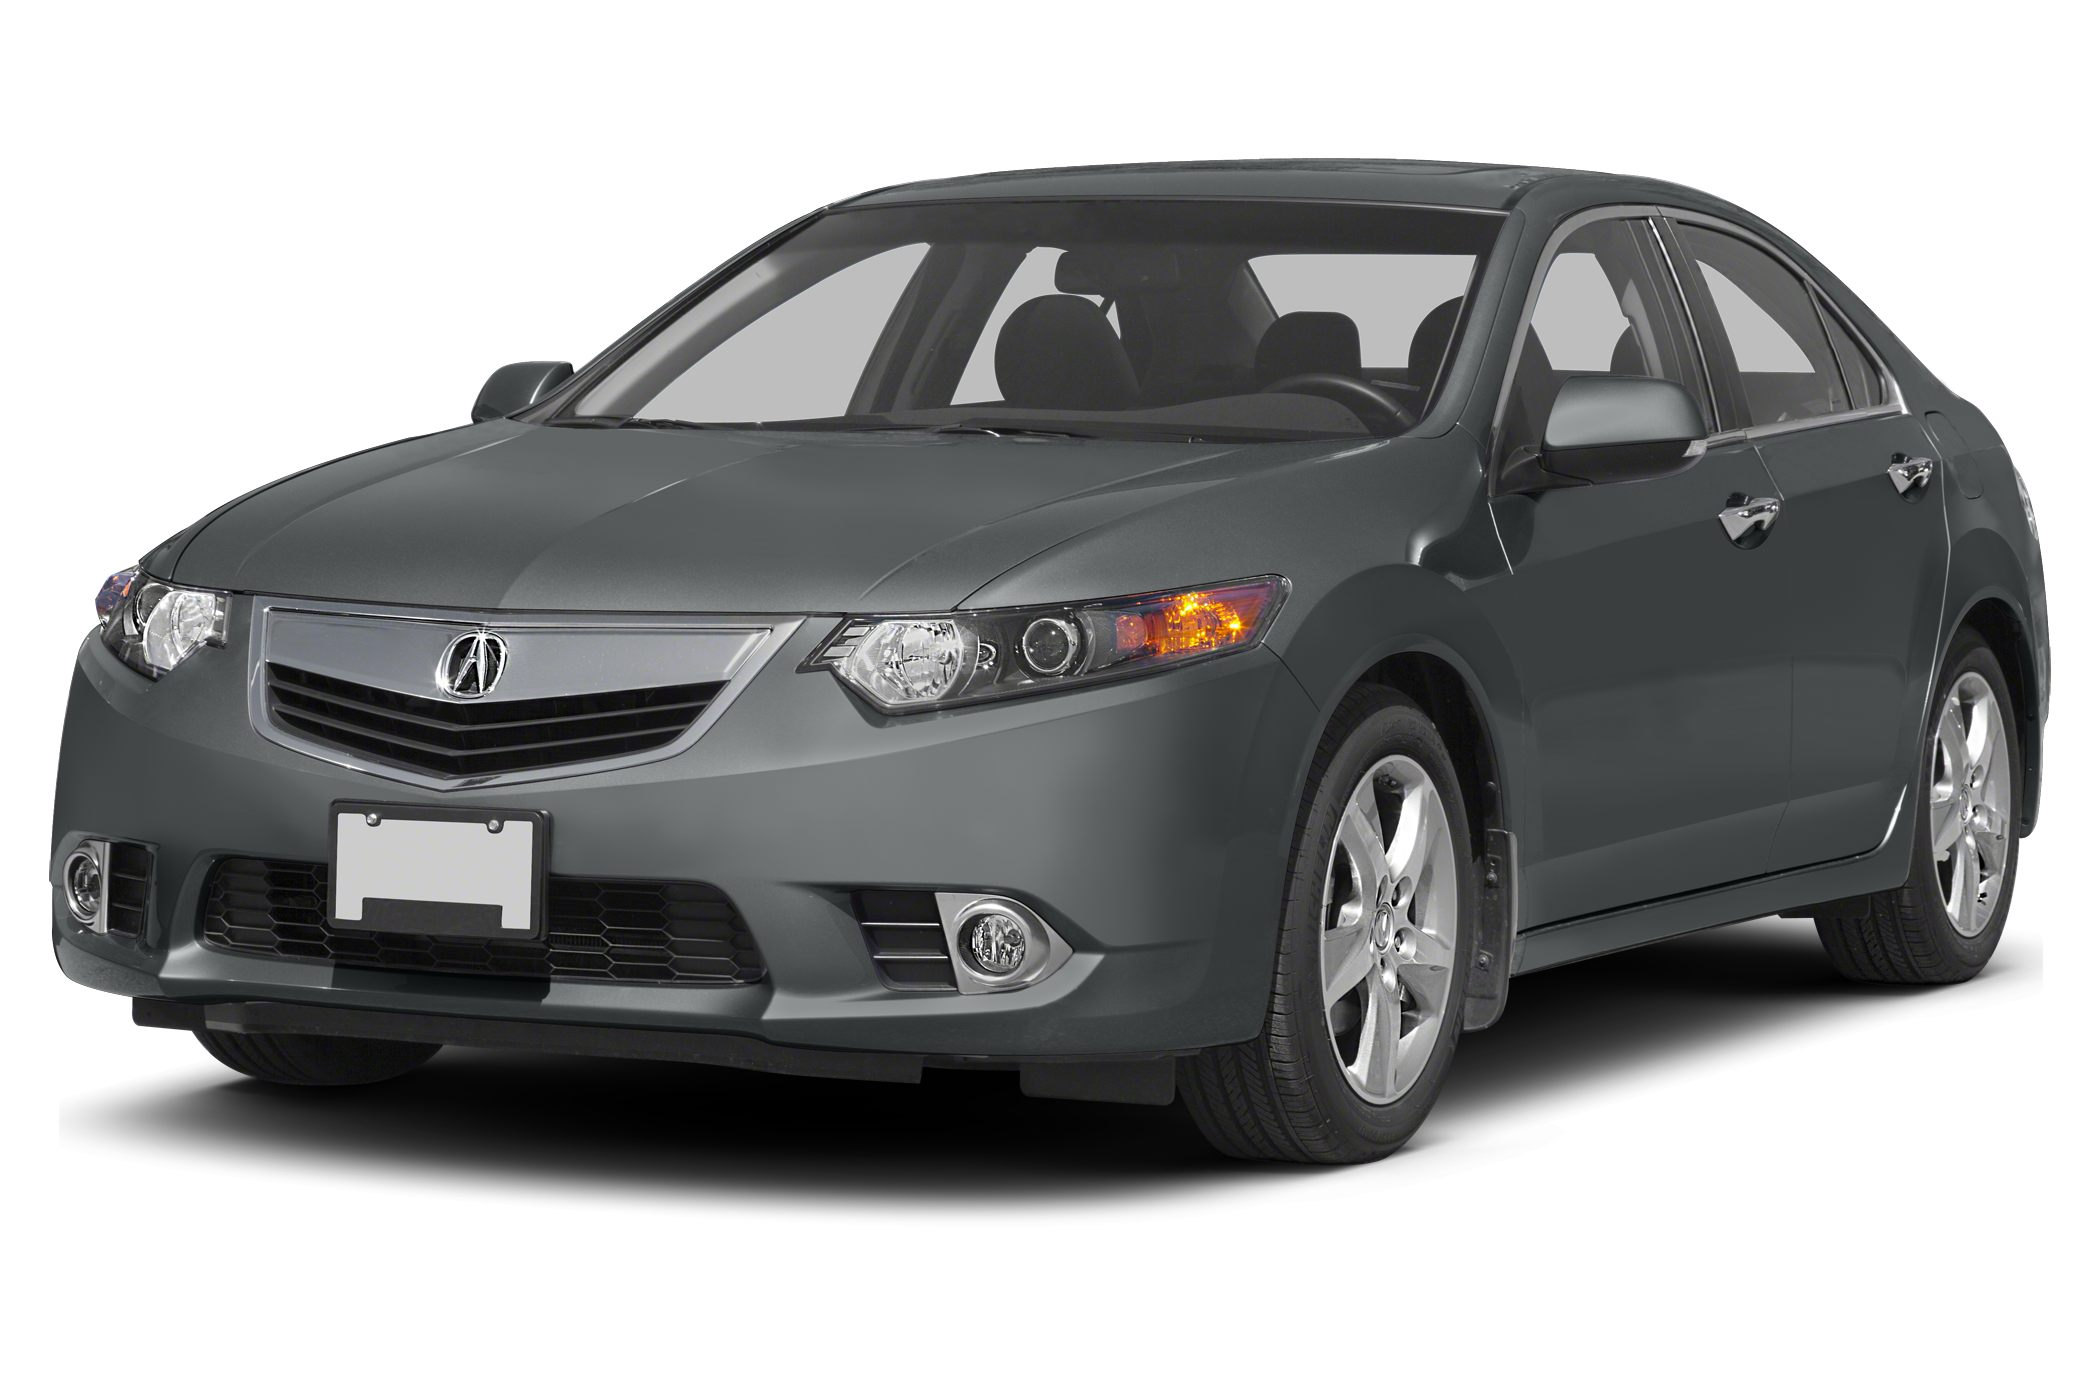 2013 Acura TSX 24 Technology Clean Carfax One Owner - Acura Certified - Navigation Bluetooth He